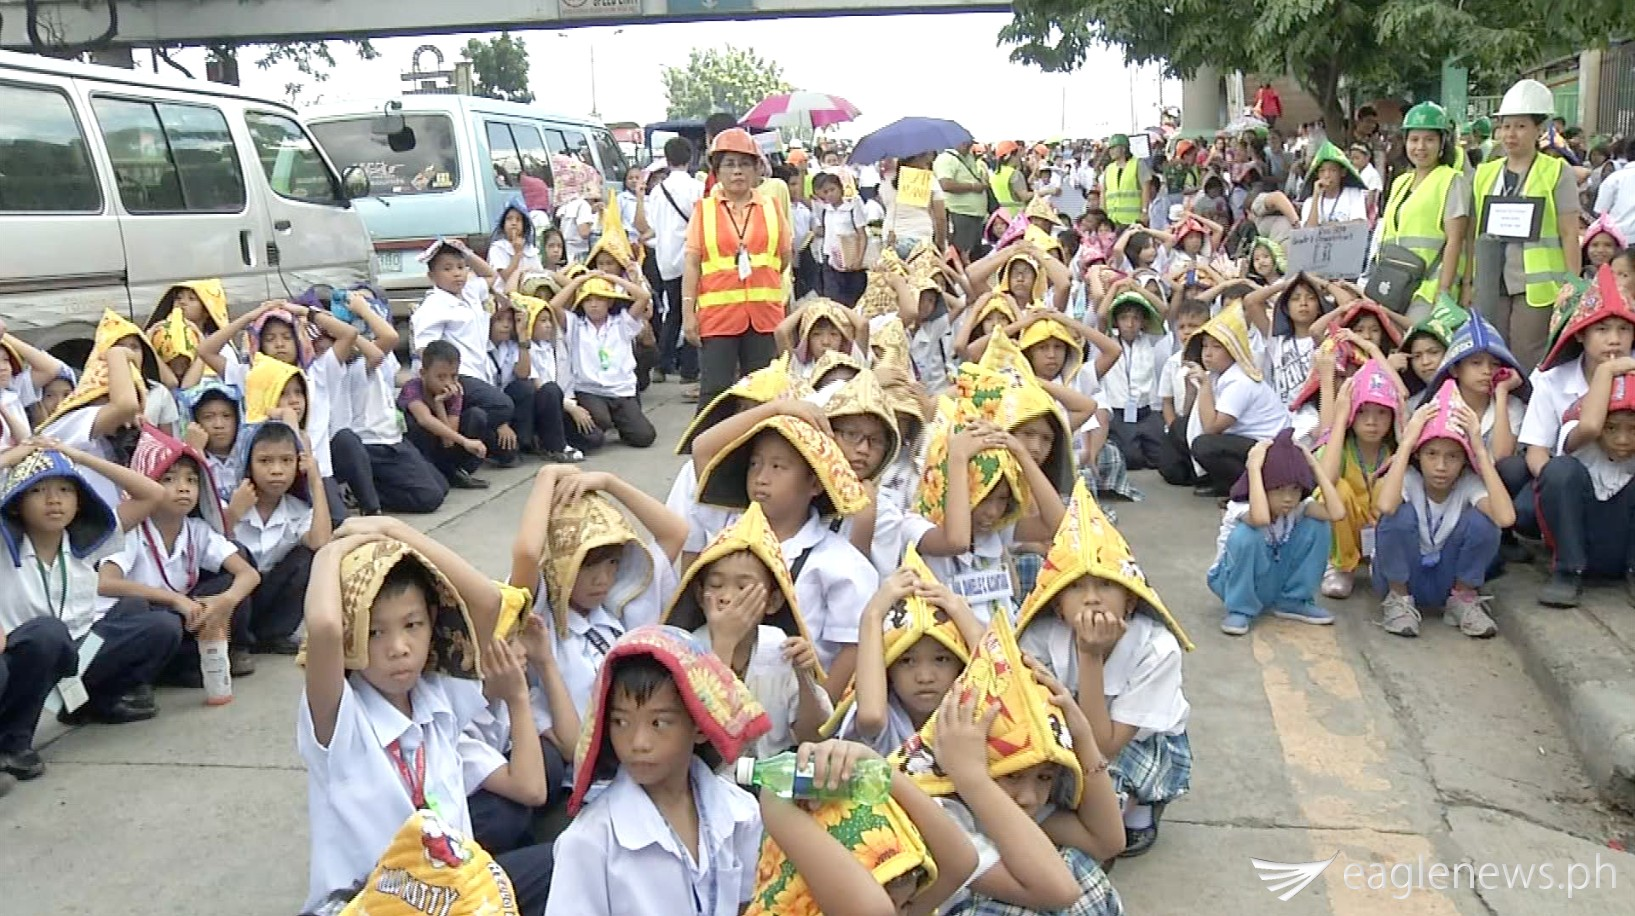 Some of the school children who participated in the Metro Manila Development Authority's metro-wide quake drill on July 30, 2015.  (Eagle News Service)